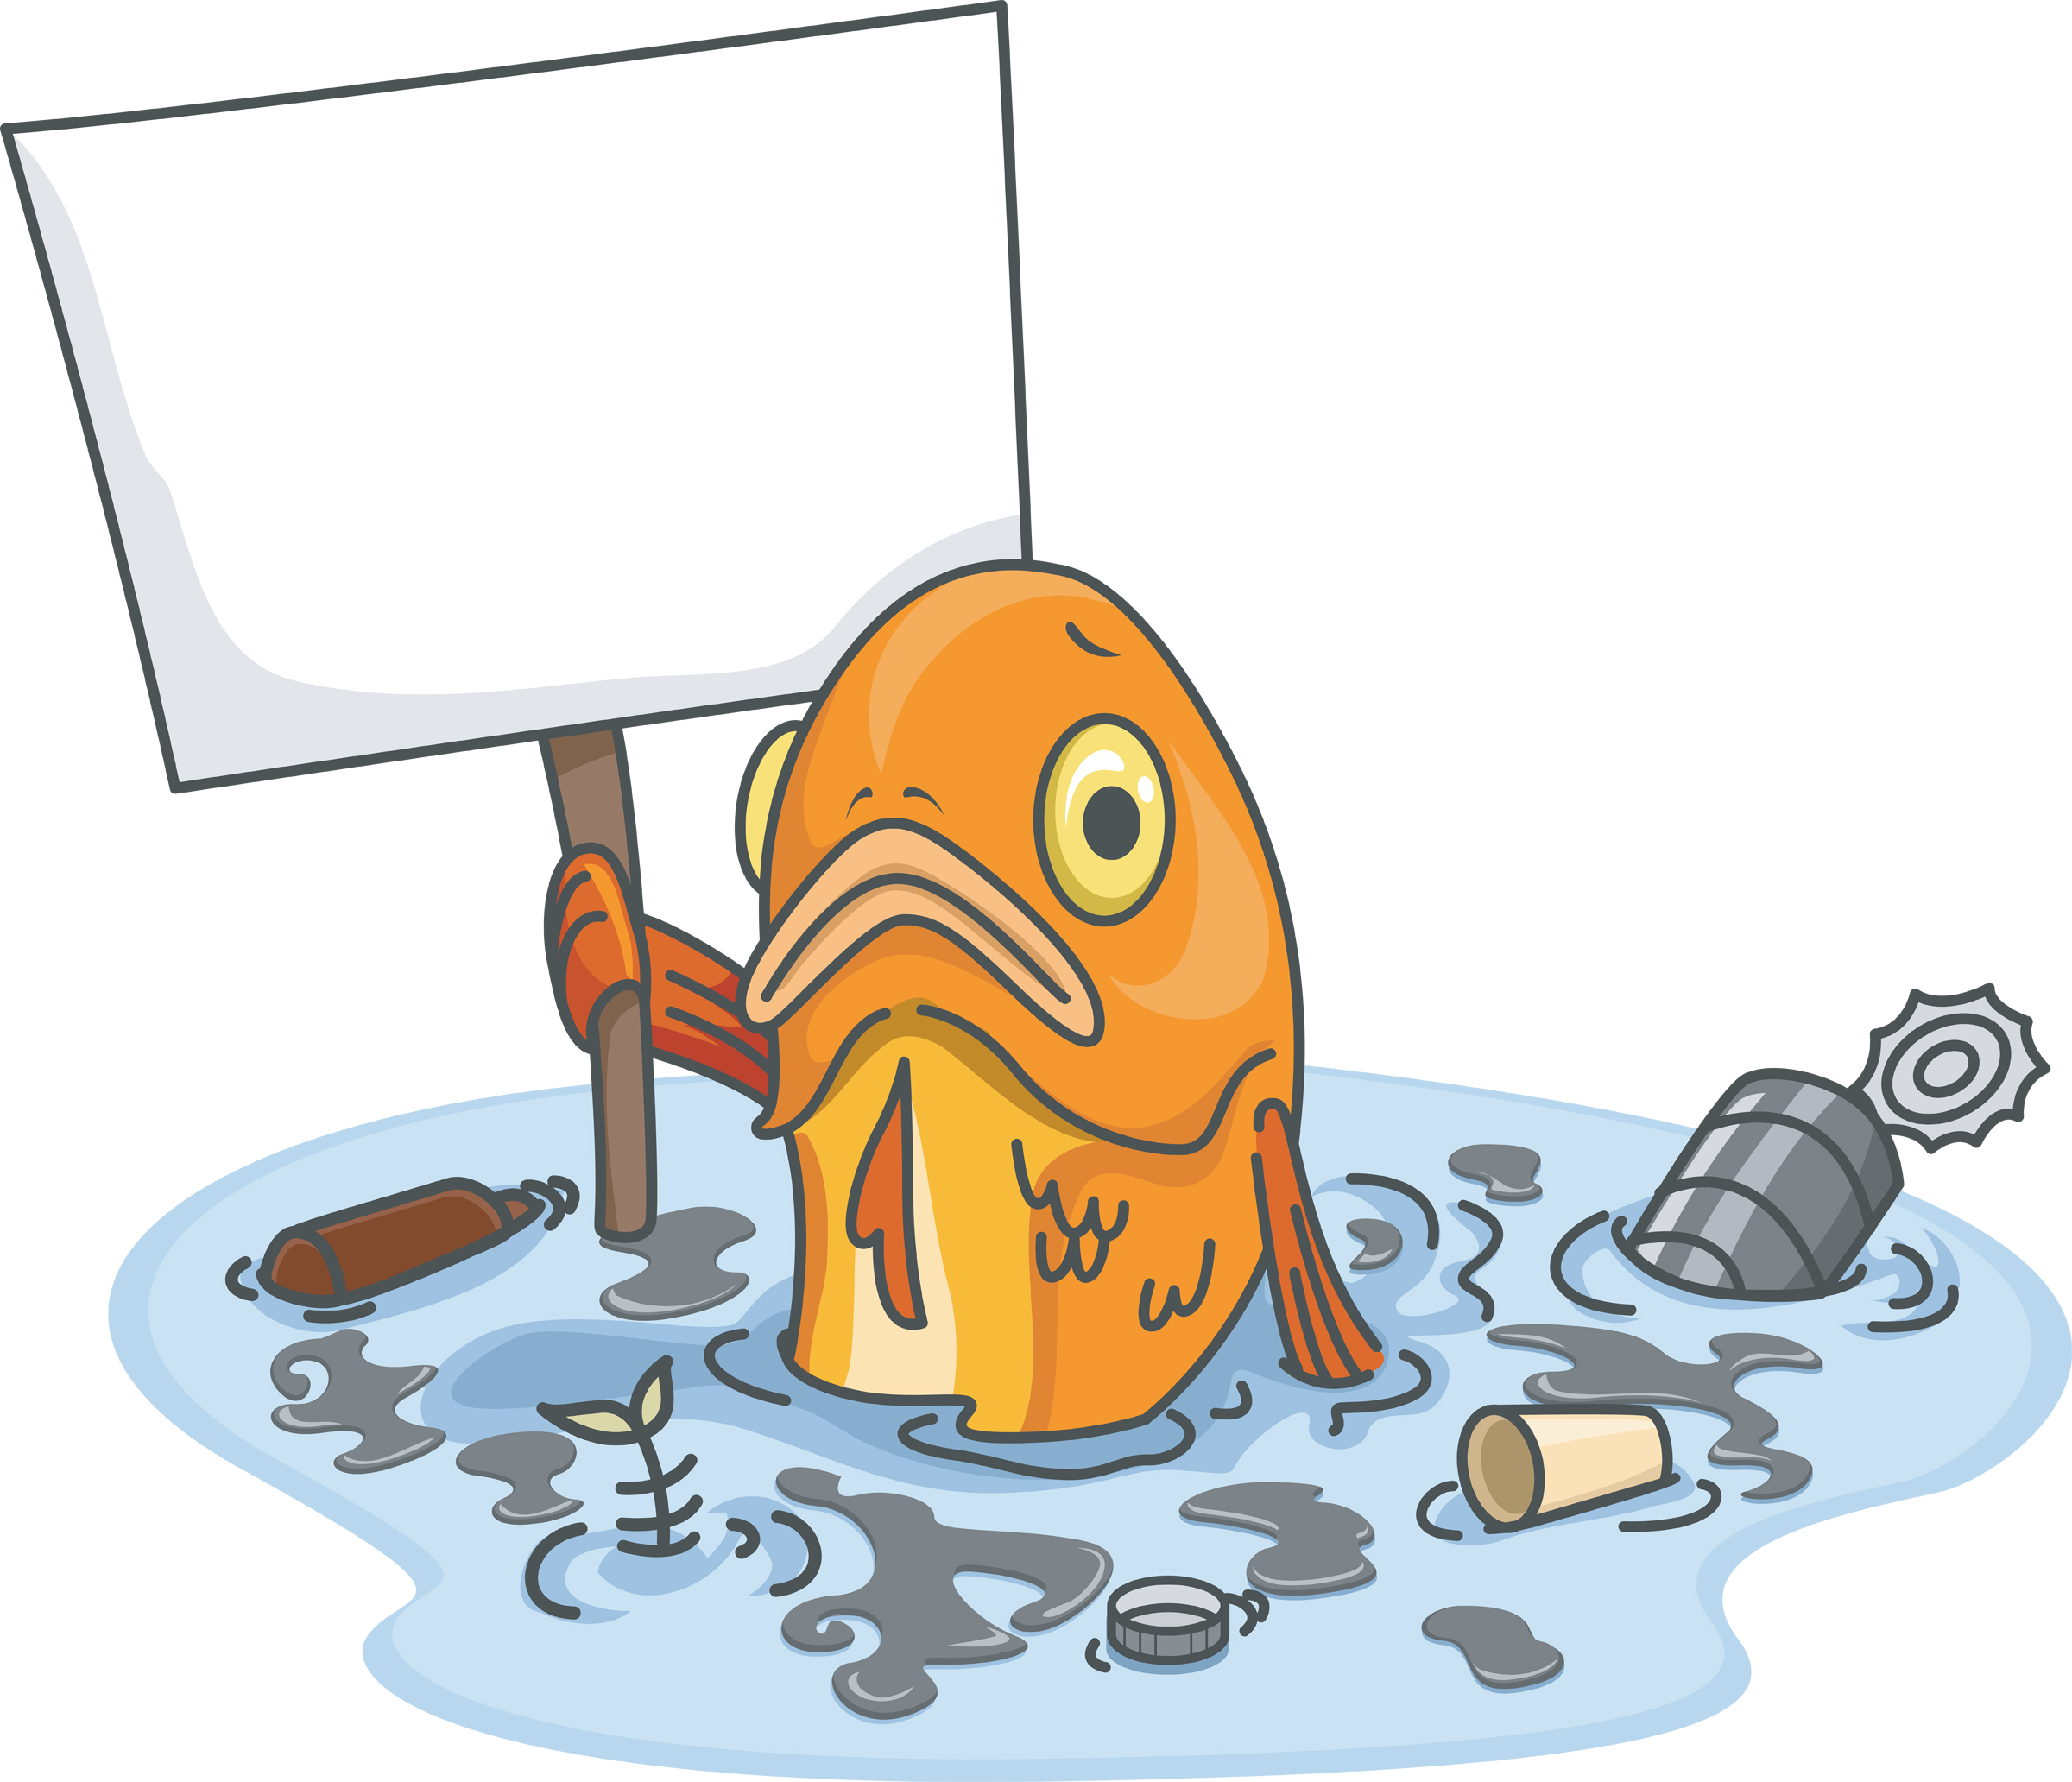 Pollution clipart two cause. Water study material for